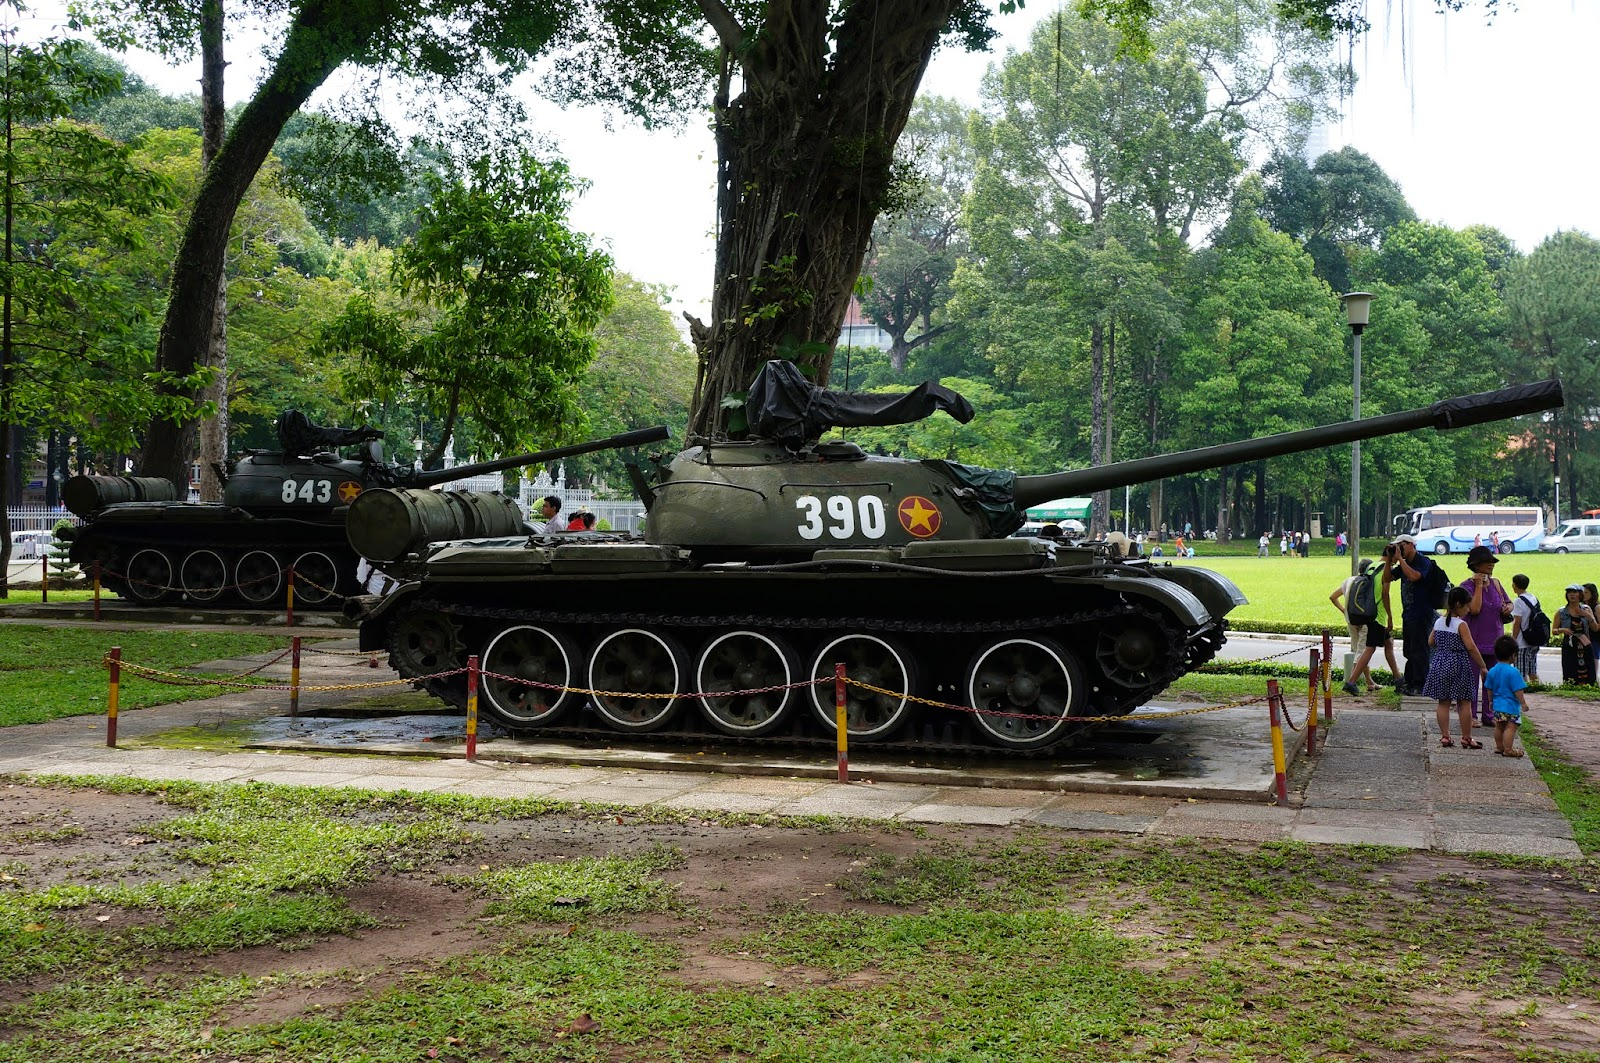 Tanks on display at Independence Palace